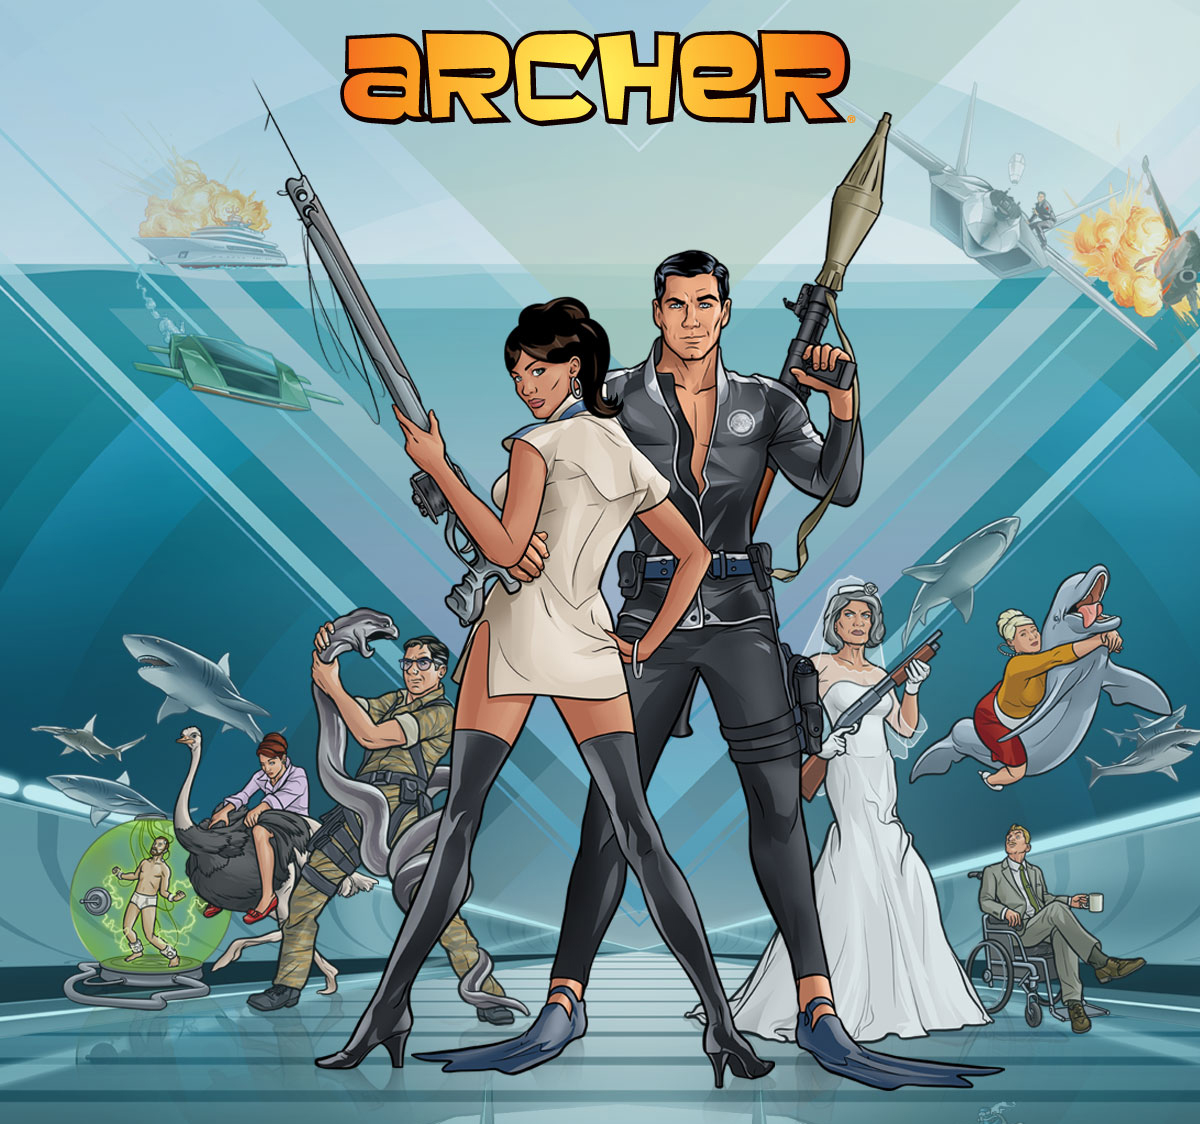 Archer season 5 episode 1 - Archer episodes youtube ...